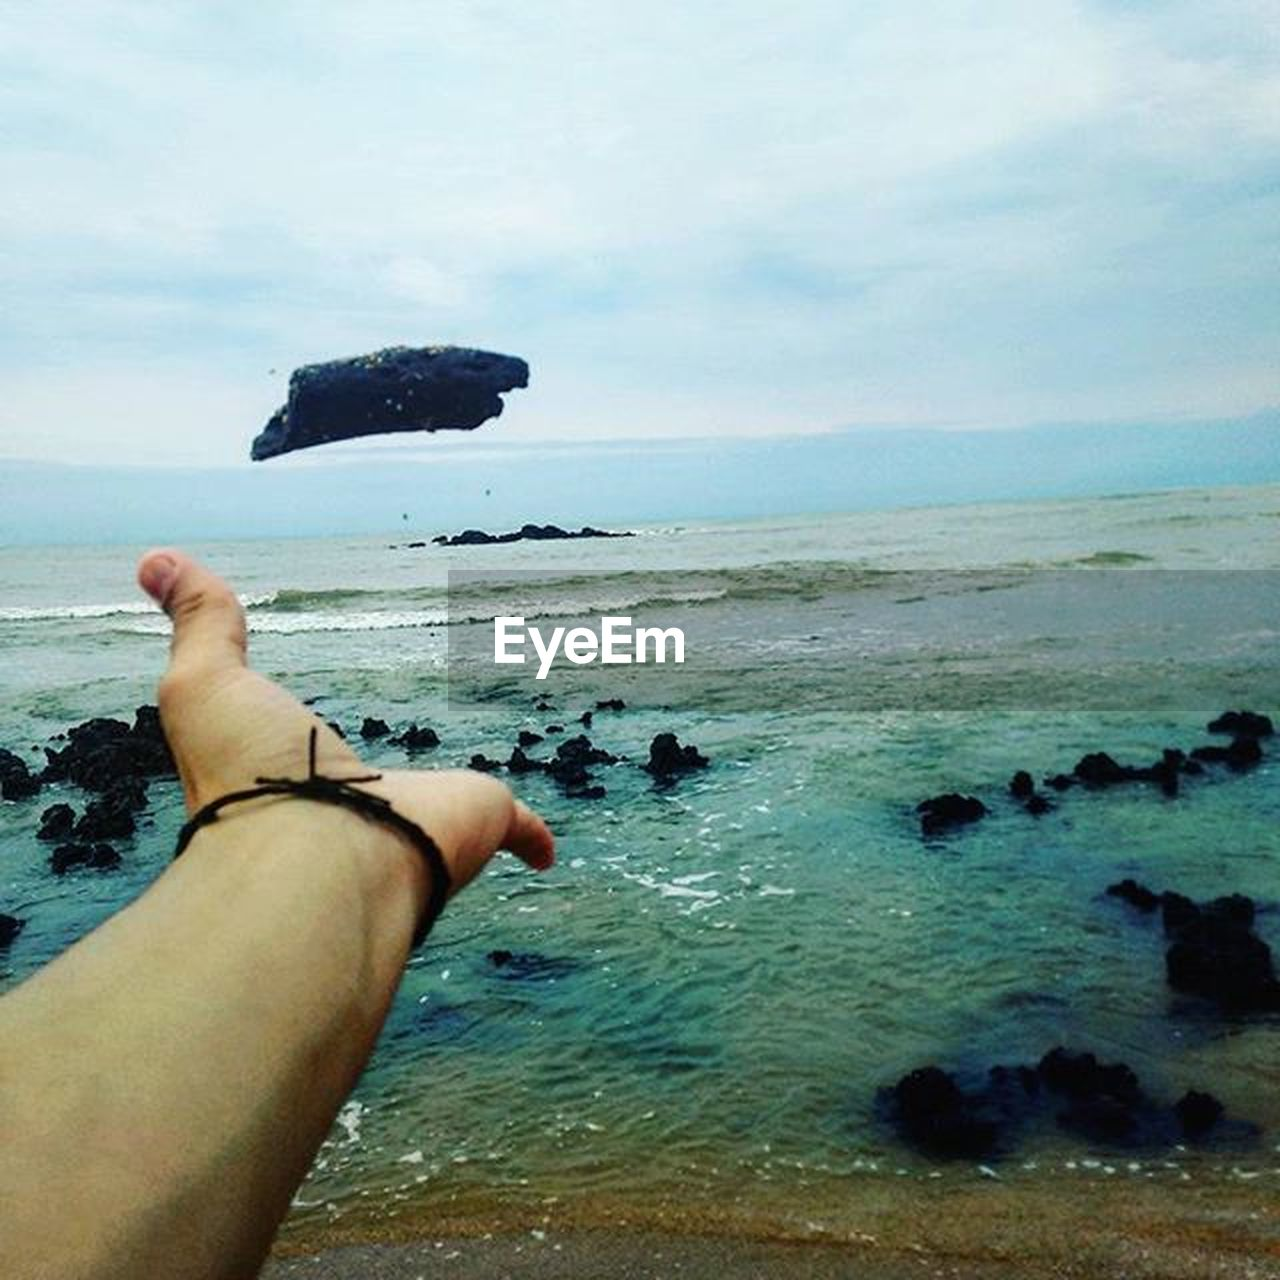 sea, human hand, water, hand, sky, human body part, one person, real people, horizon over water, beach, horizon, land, nature, day, beauty in nature, personal perspective, holding, scenics - nature, lifestyles, body part, outdoors, finger